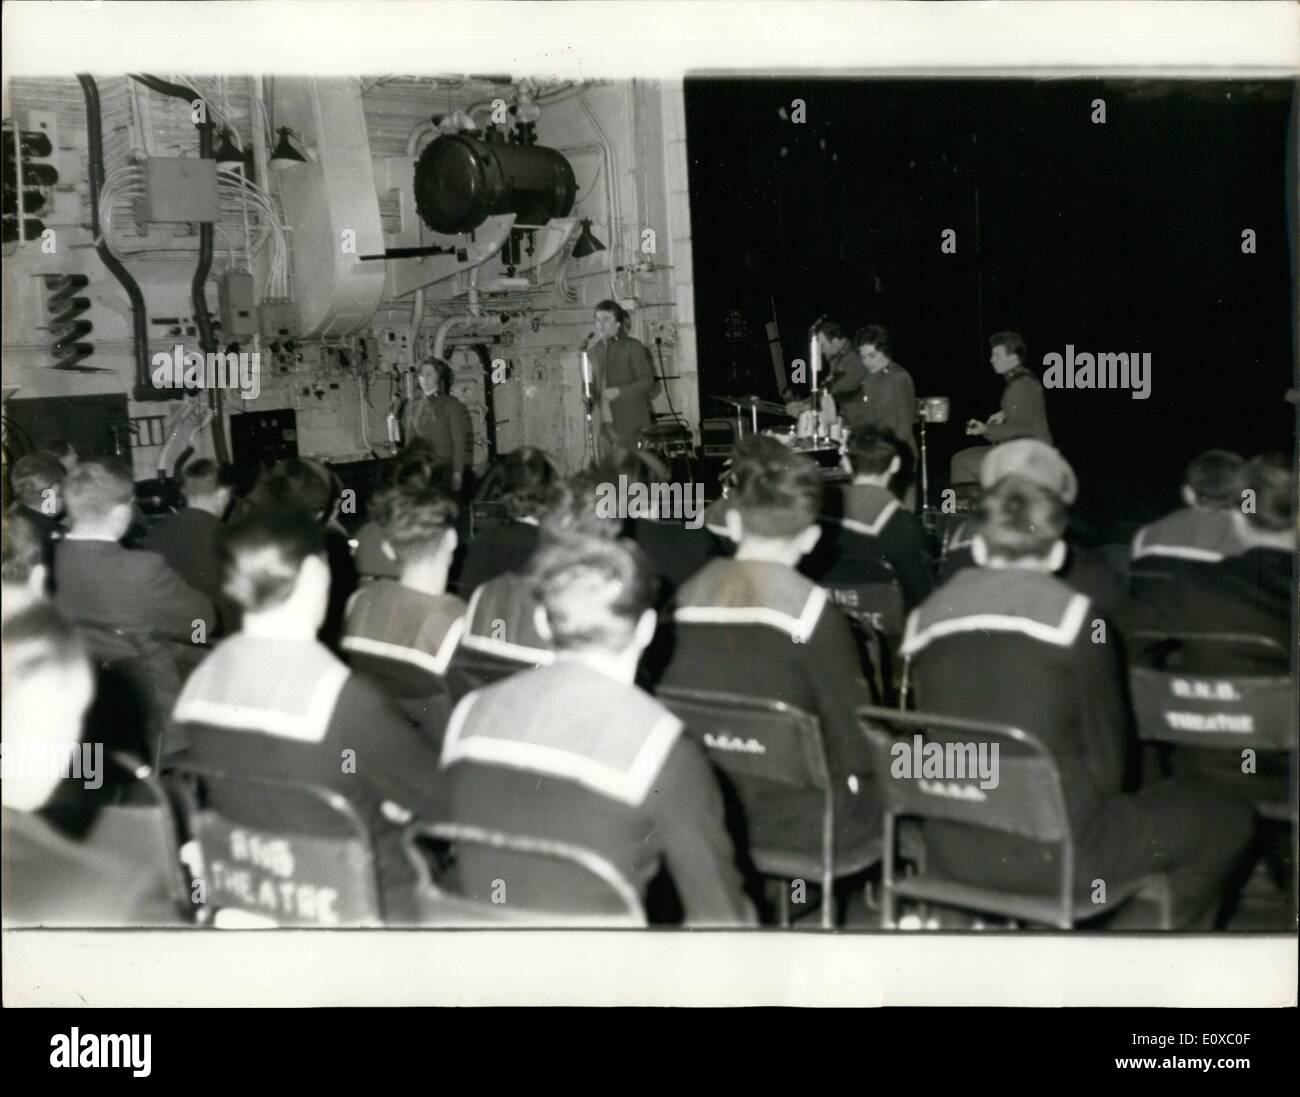 Mar. 03, 1966 - The Joy Strings Entertain the Navy: The Salvation Army pop group, the Joy Strings, yesterday entertained the navy,aboard the aircraft carrier, H.M.S. Centaur at Portsmouth . Photo Shows The Joy strings seen entertaining sailors aboard the aircraft carrier, Centaur at Portsmouth yesterday. - Stock Image